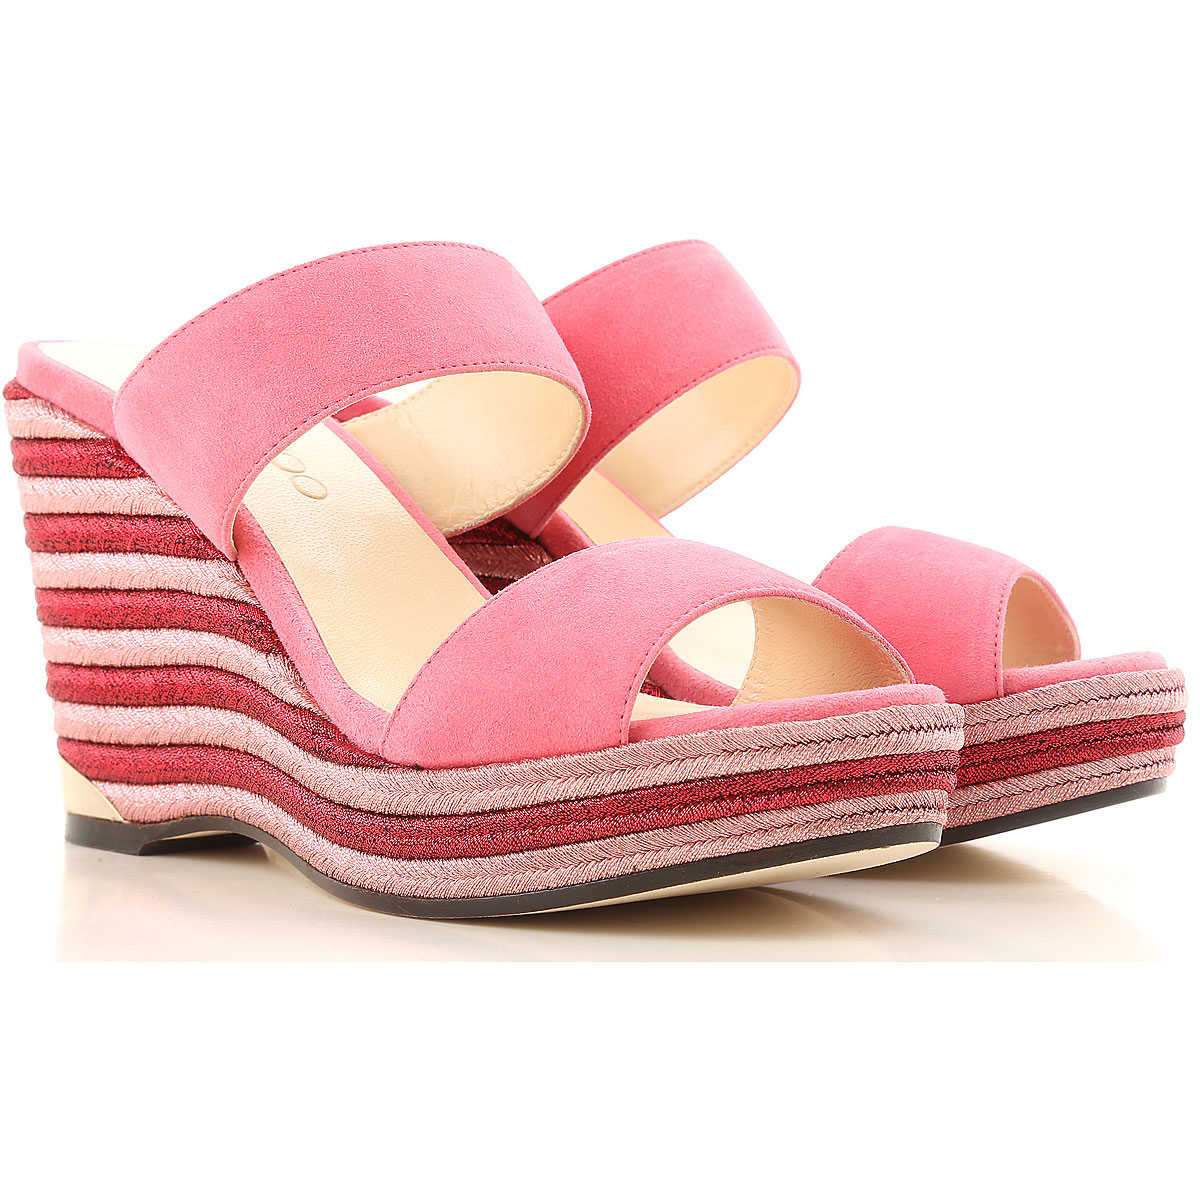 Jimmy Choo Wedges for Women On Sale in Outlet